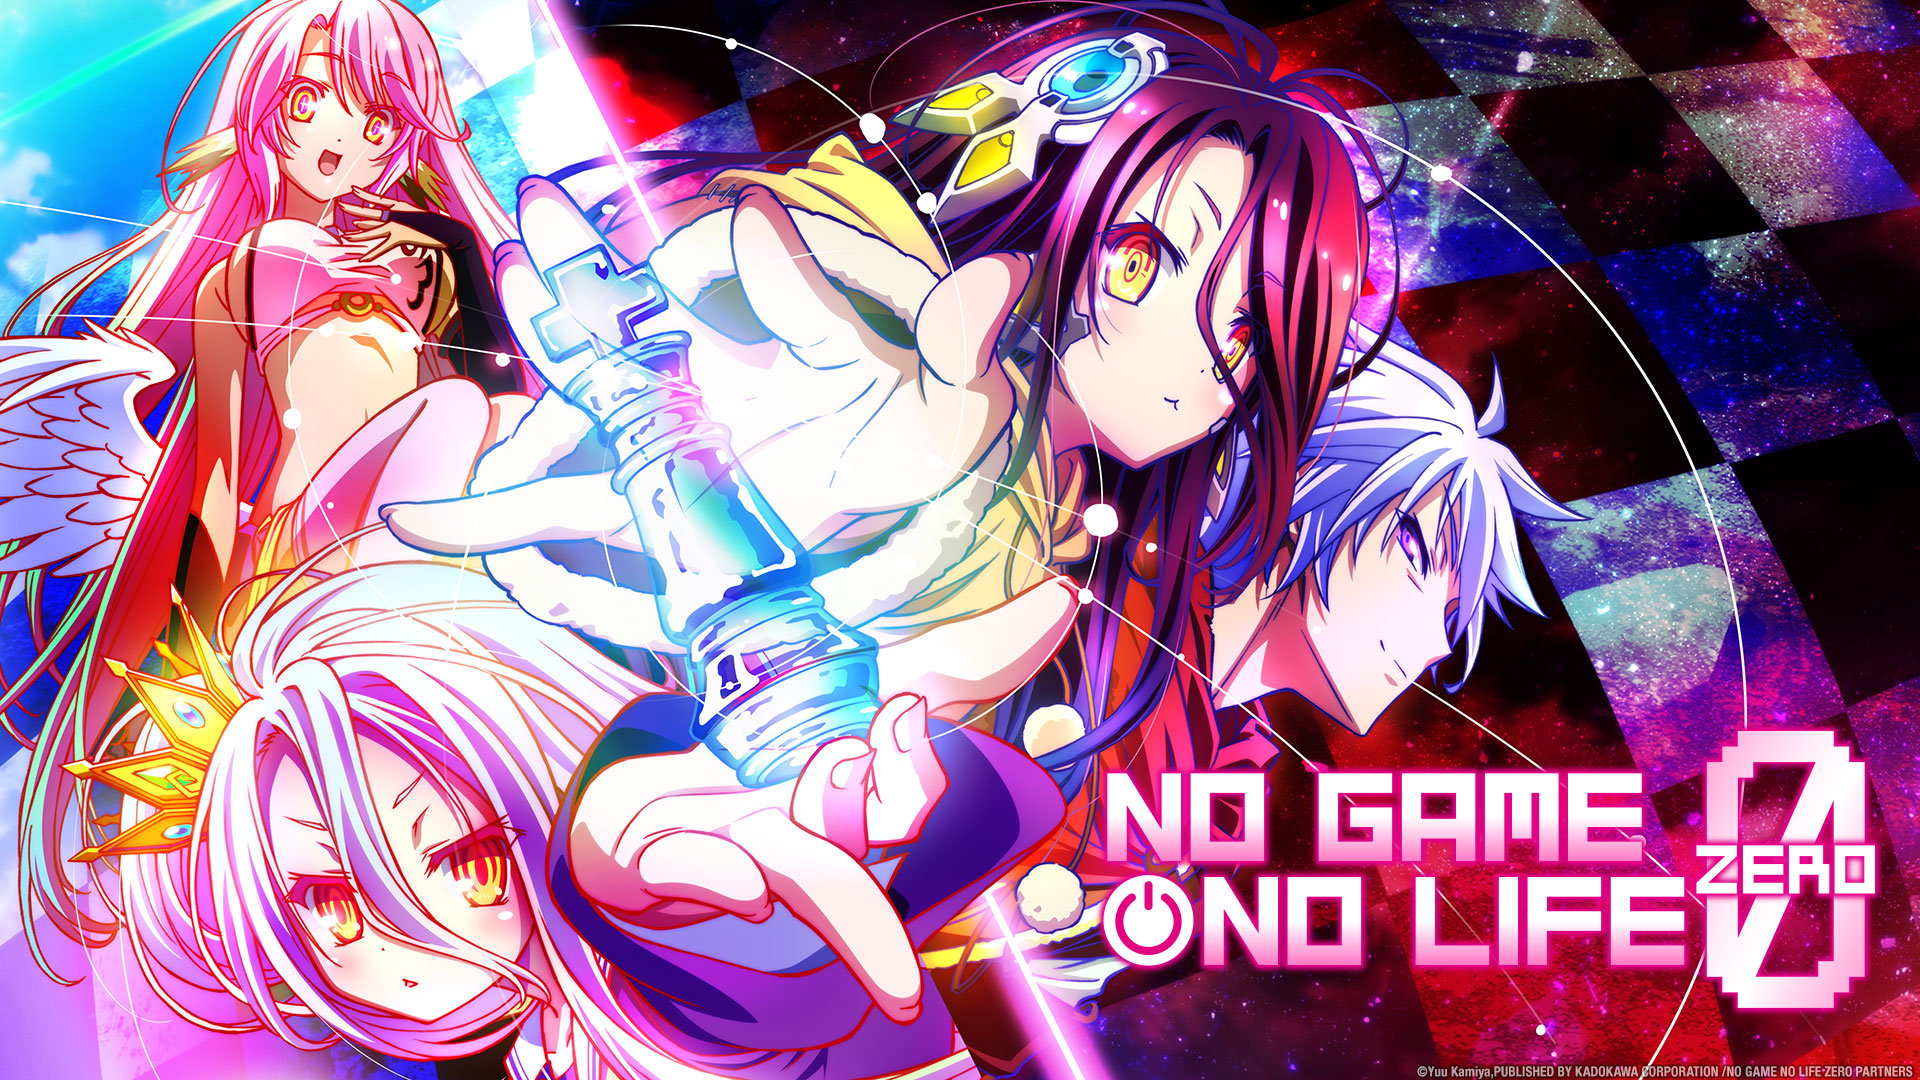 No Game No Life Fanservice Review Film Anime